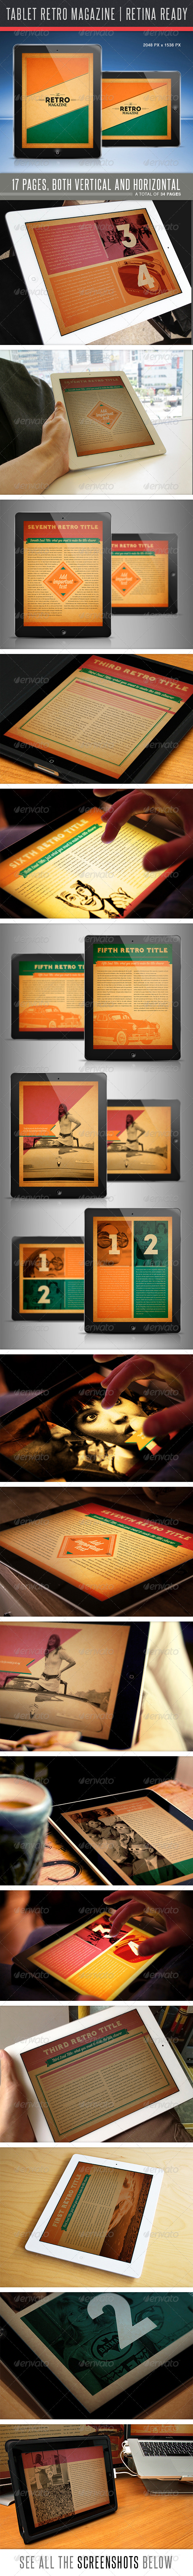 GraphicRiver The Retro MGZ For Tablet 4824759